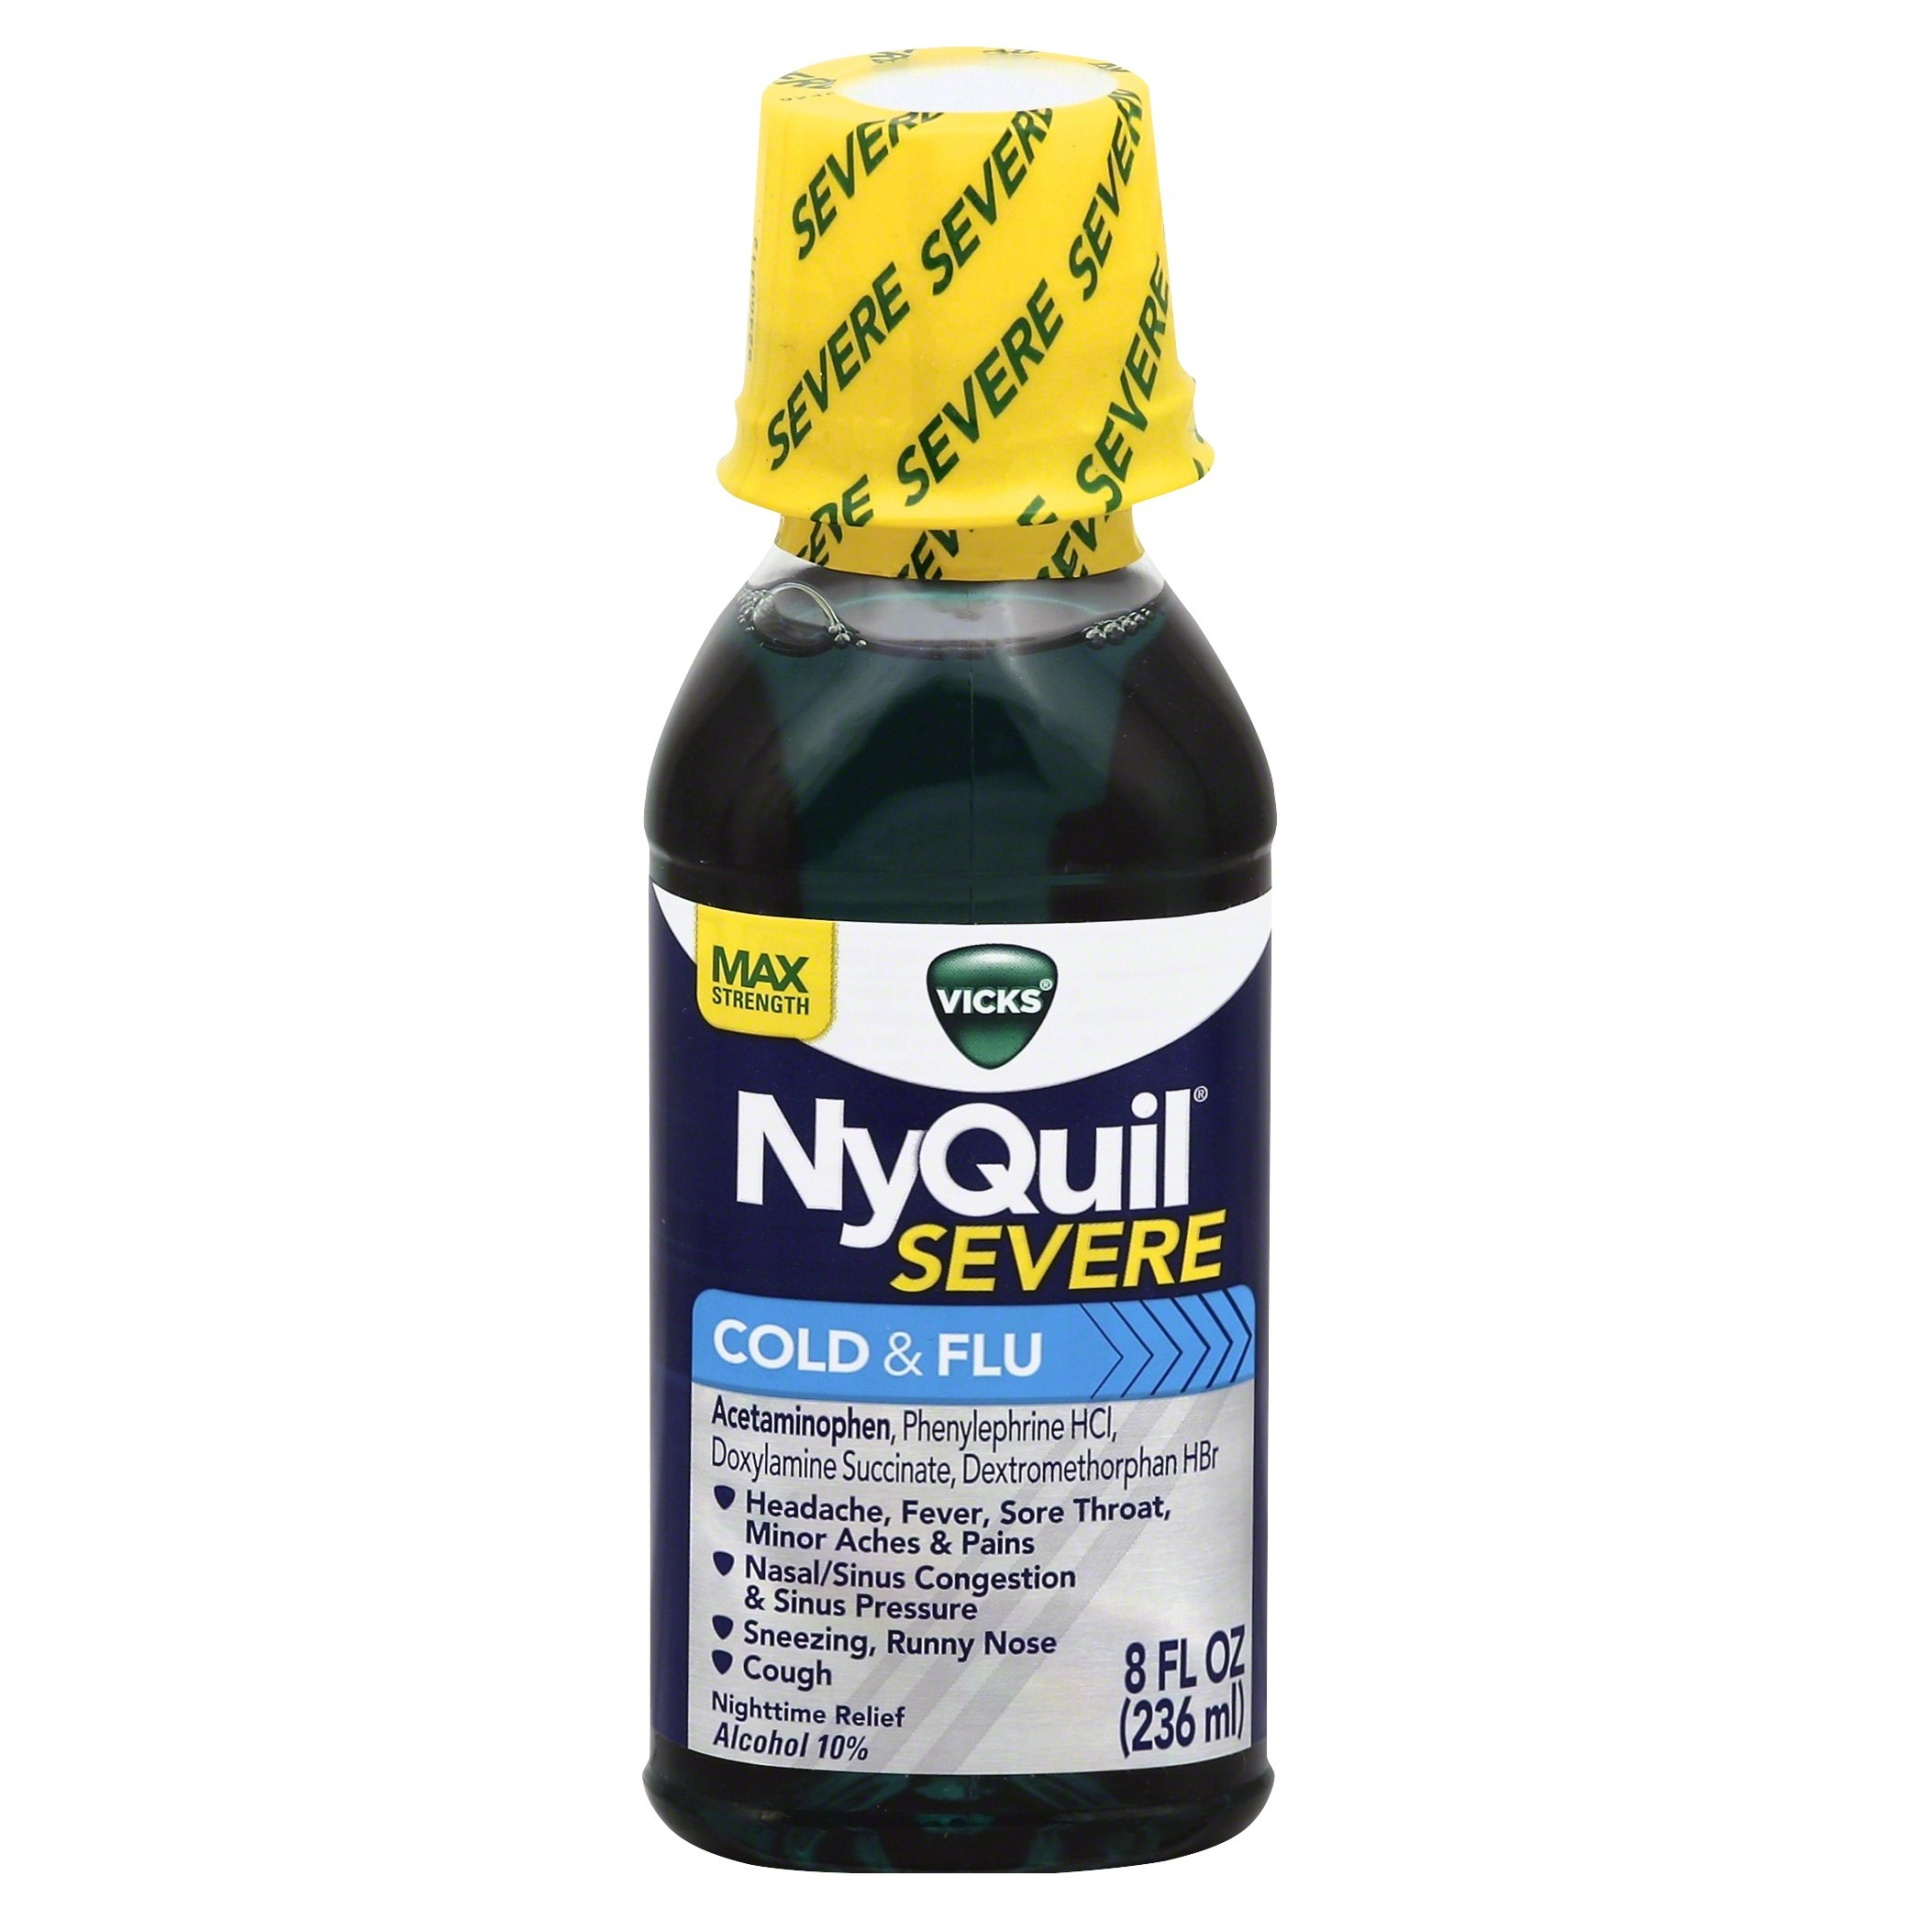 slide 1 of 1, Vicks NyQuil Severe Cold & Flu Nighttime Relief Liquid,